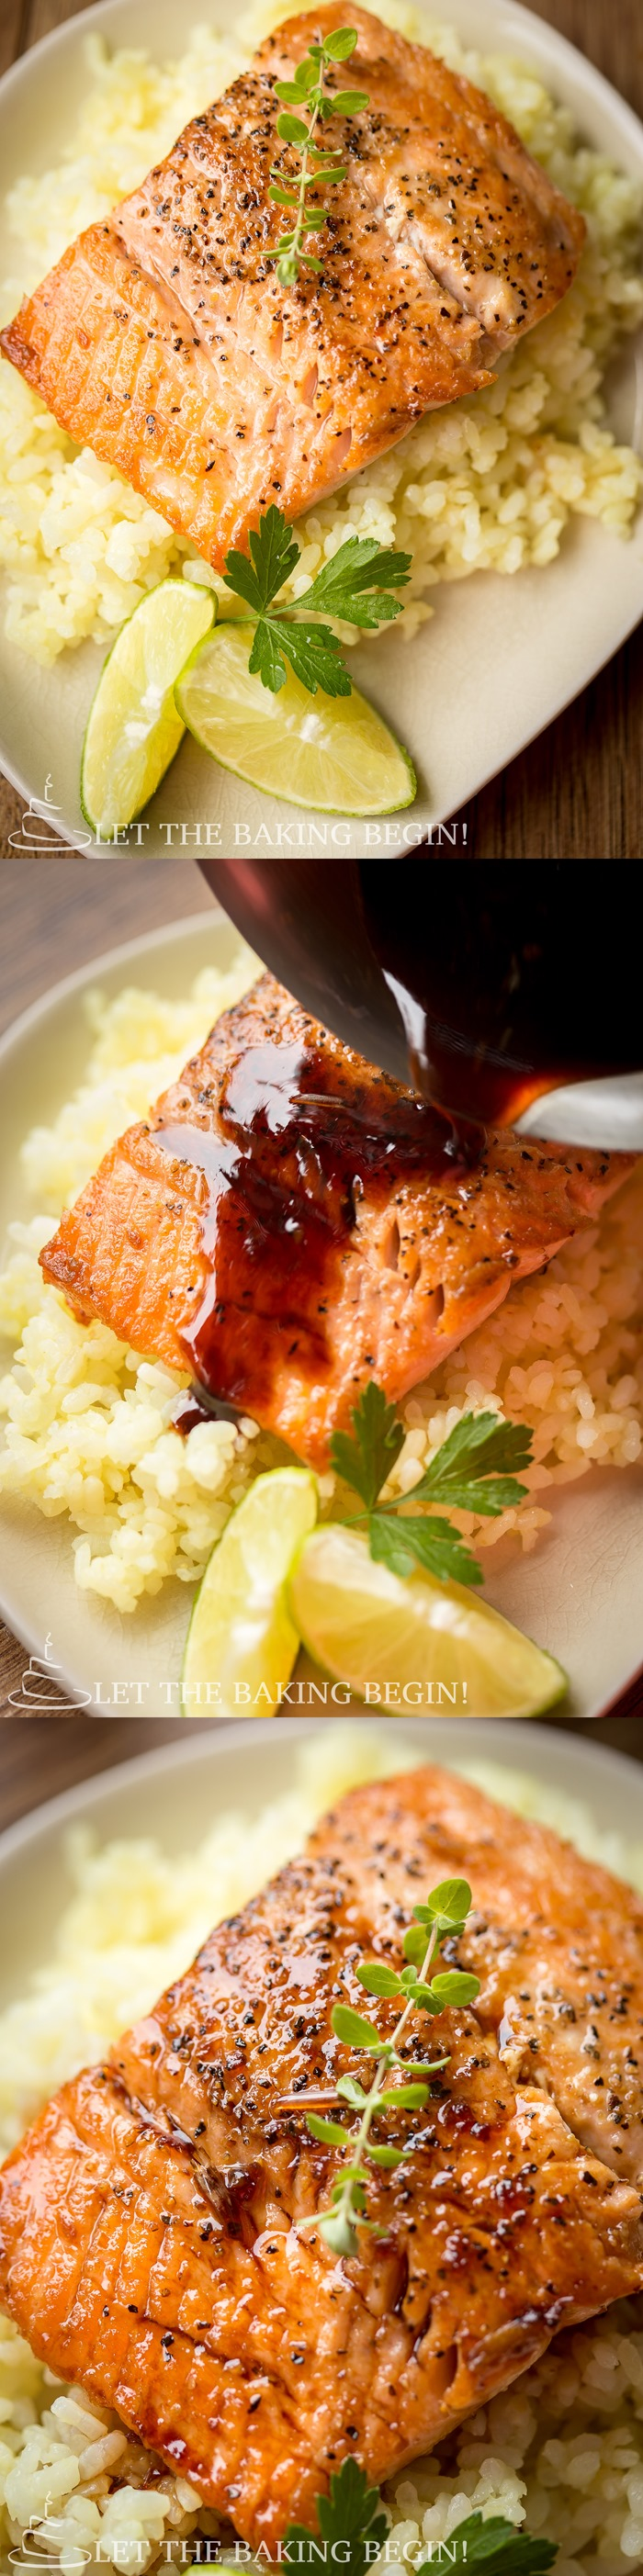 Salmon with Ginger Garlic Sauce is made by pan searing the fish until beautifully golden, then serving by drizzling the homemade Garlic Ginger Sauce on top. The flavors of the garlic and the ginger permeate the fish and make it delicious and juicy.